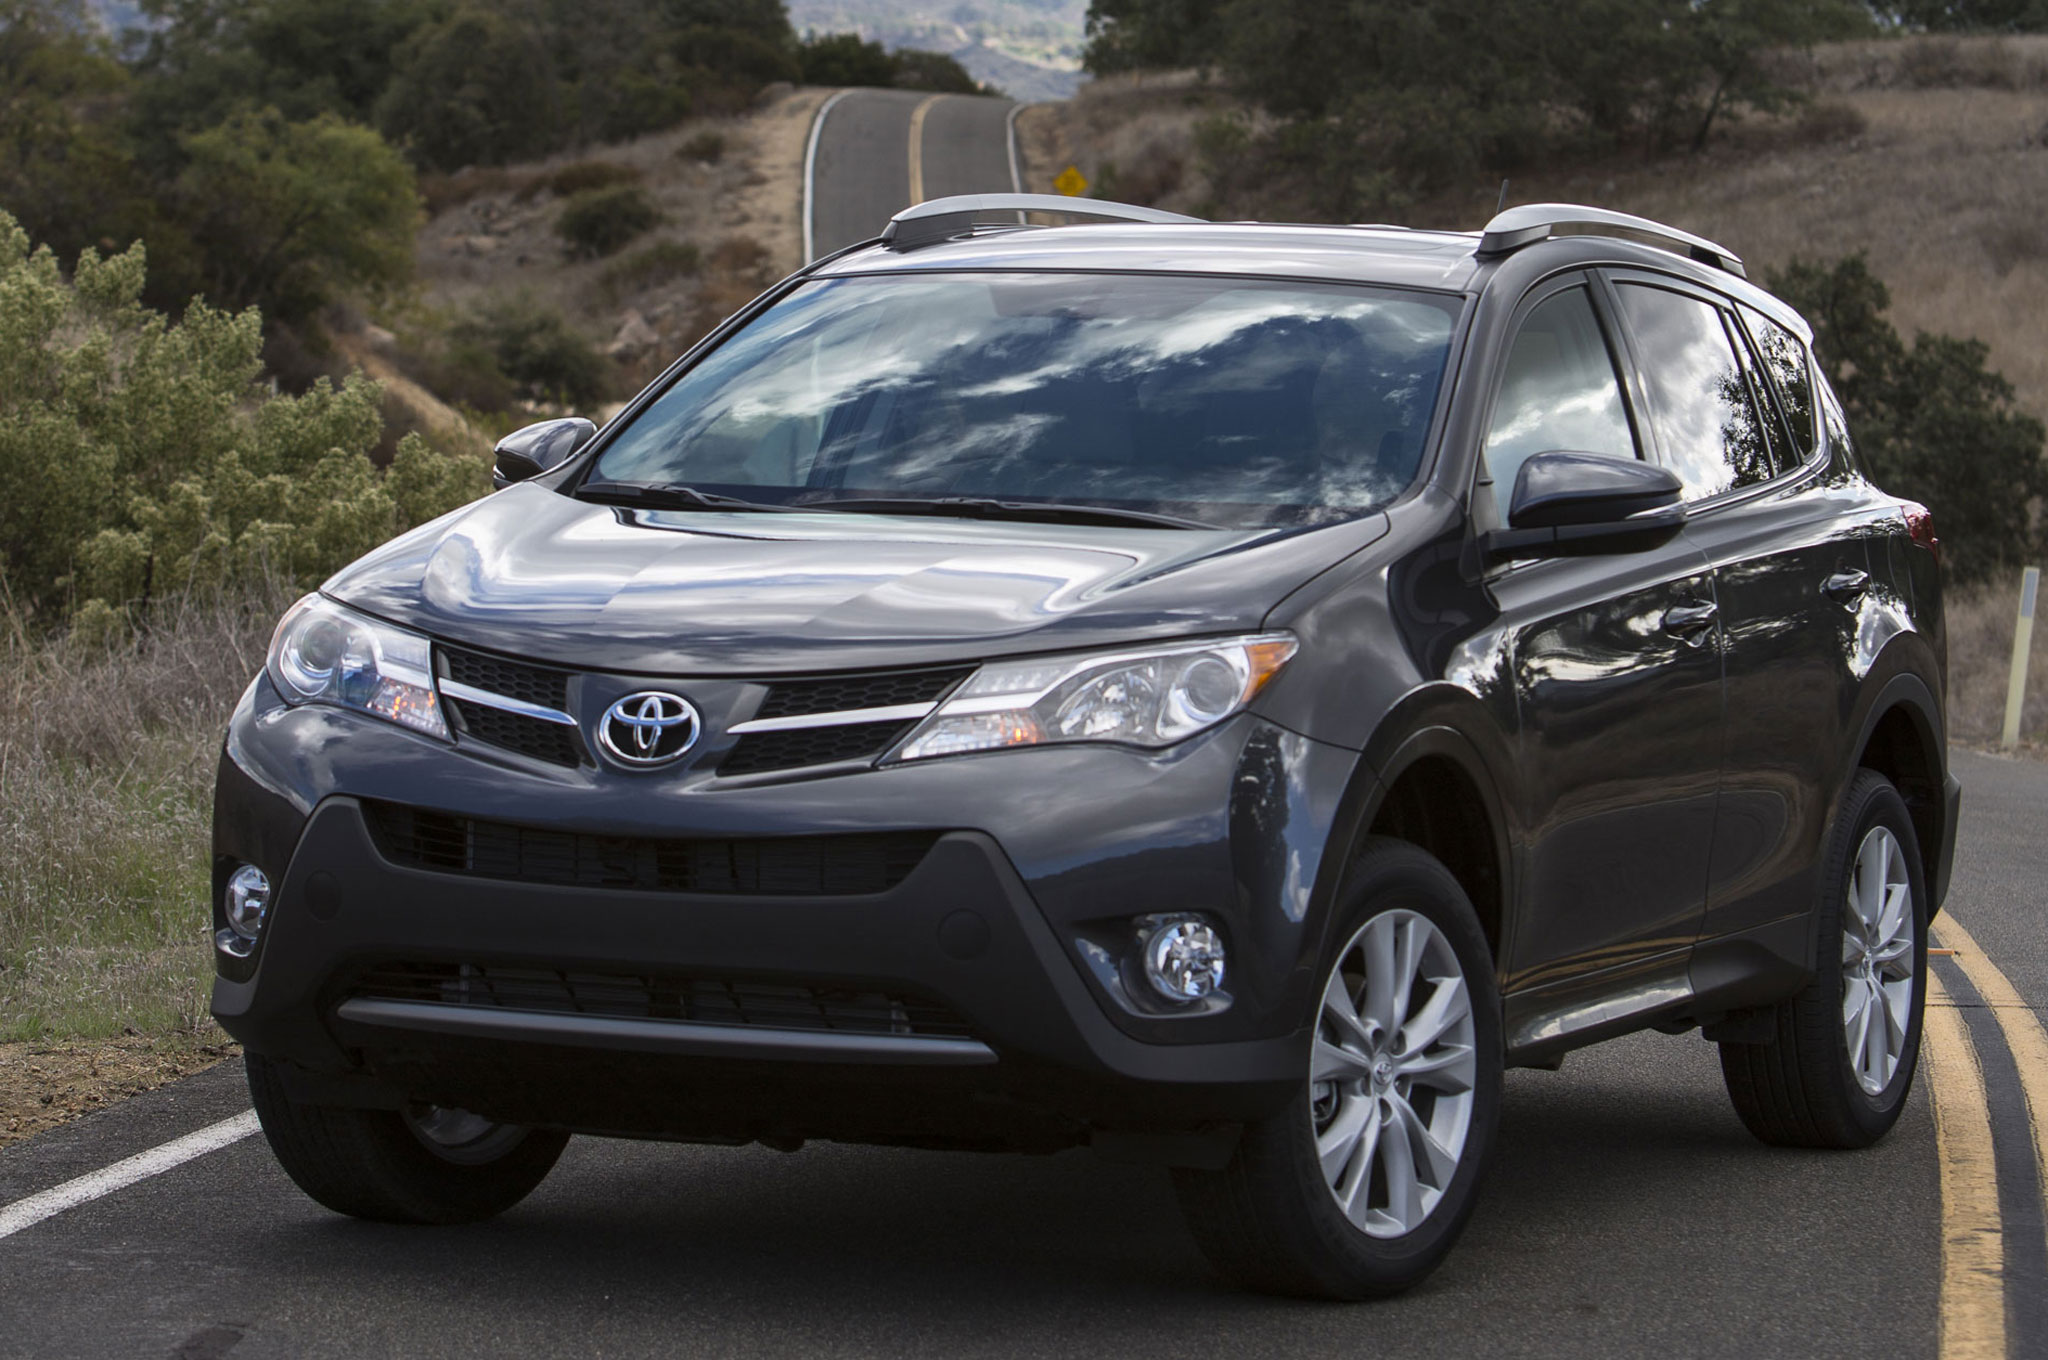 2014-Toyota-RAV4-front-left-side